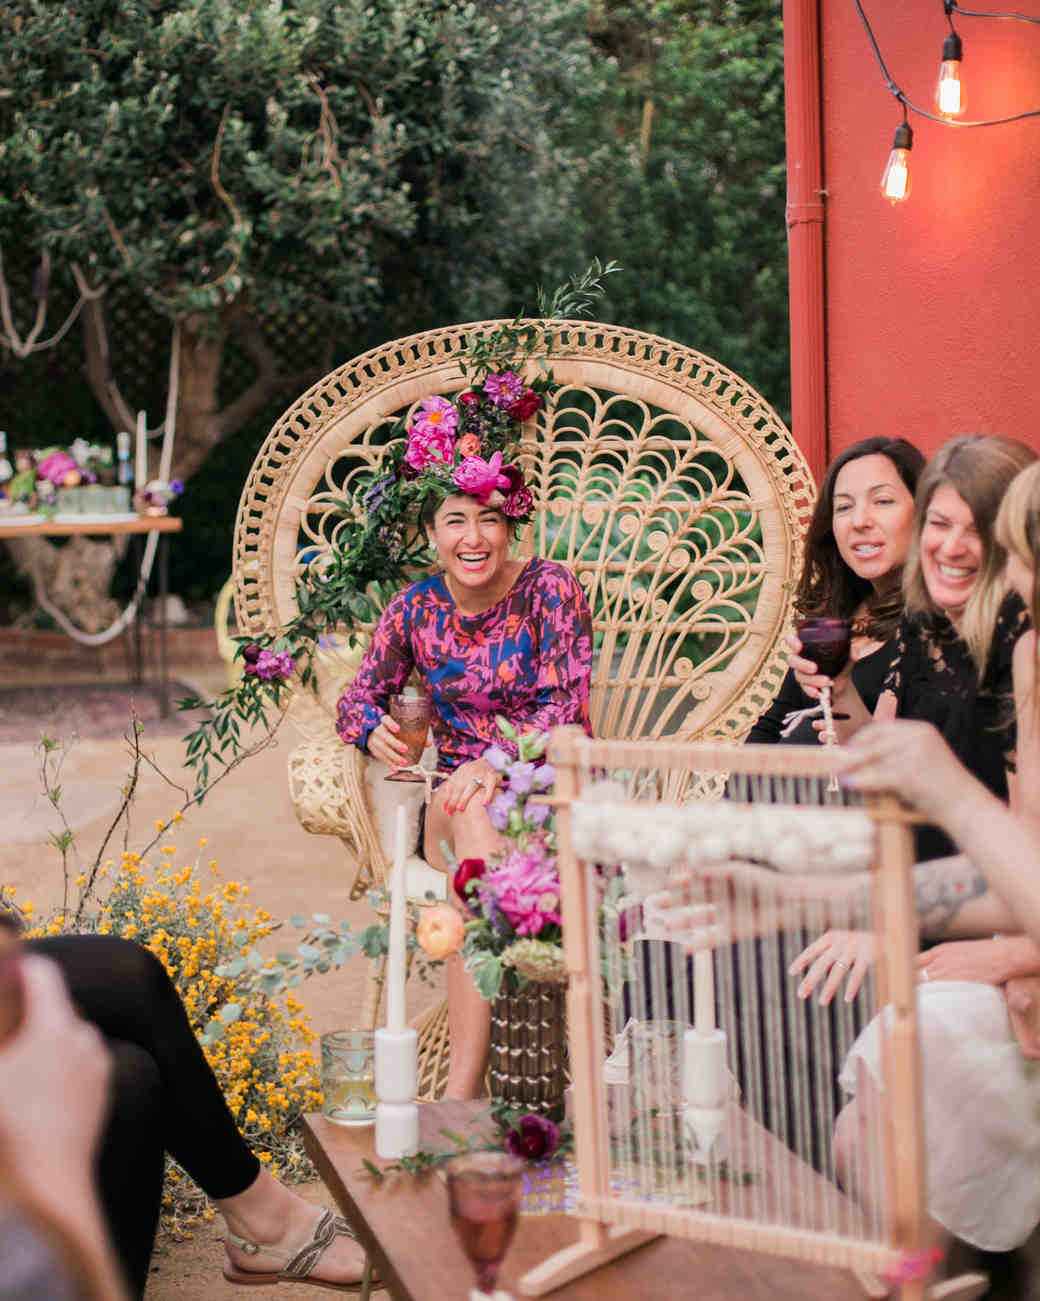 Guests at this boho-chic bachelorette party laugh and mingle while playing games